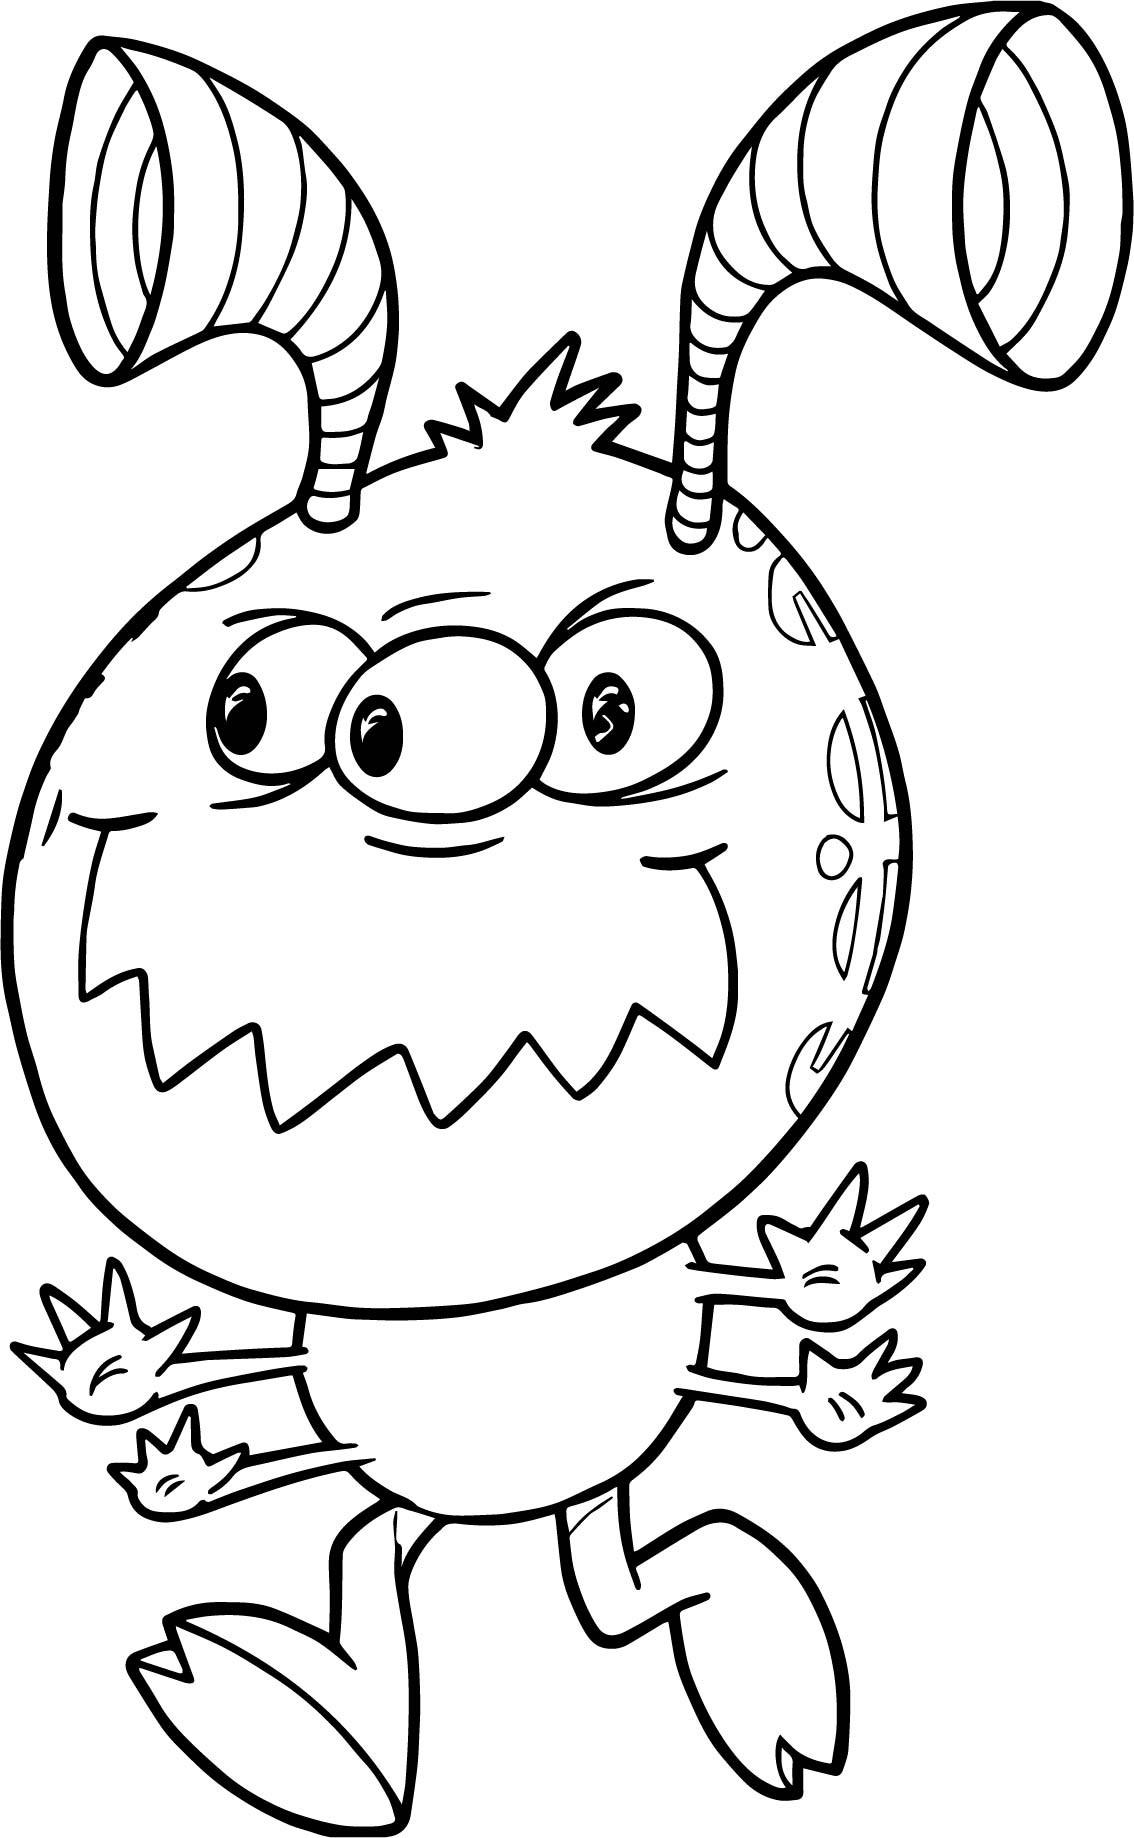 Aliens Coloring Pages  Mean Running Monster Cute Alien Coloring Page